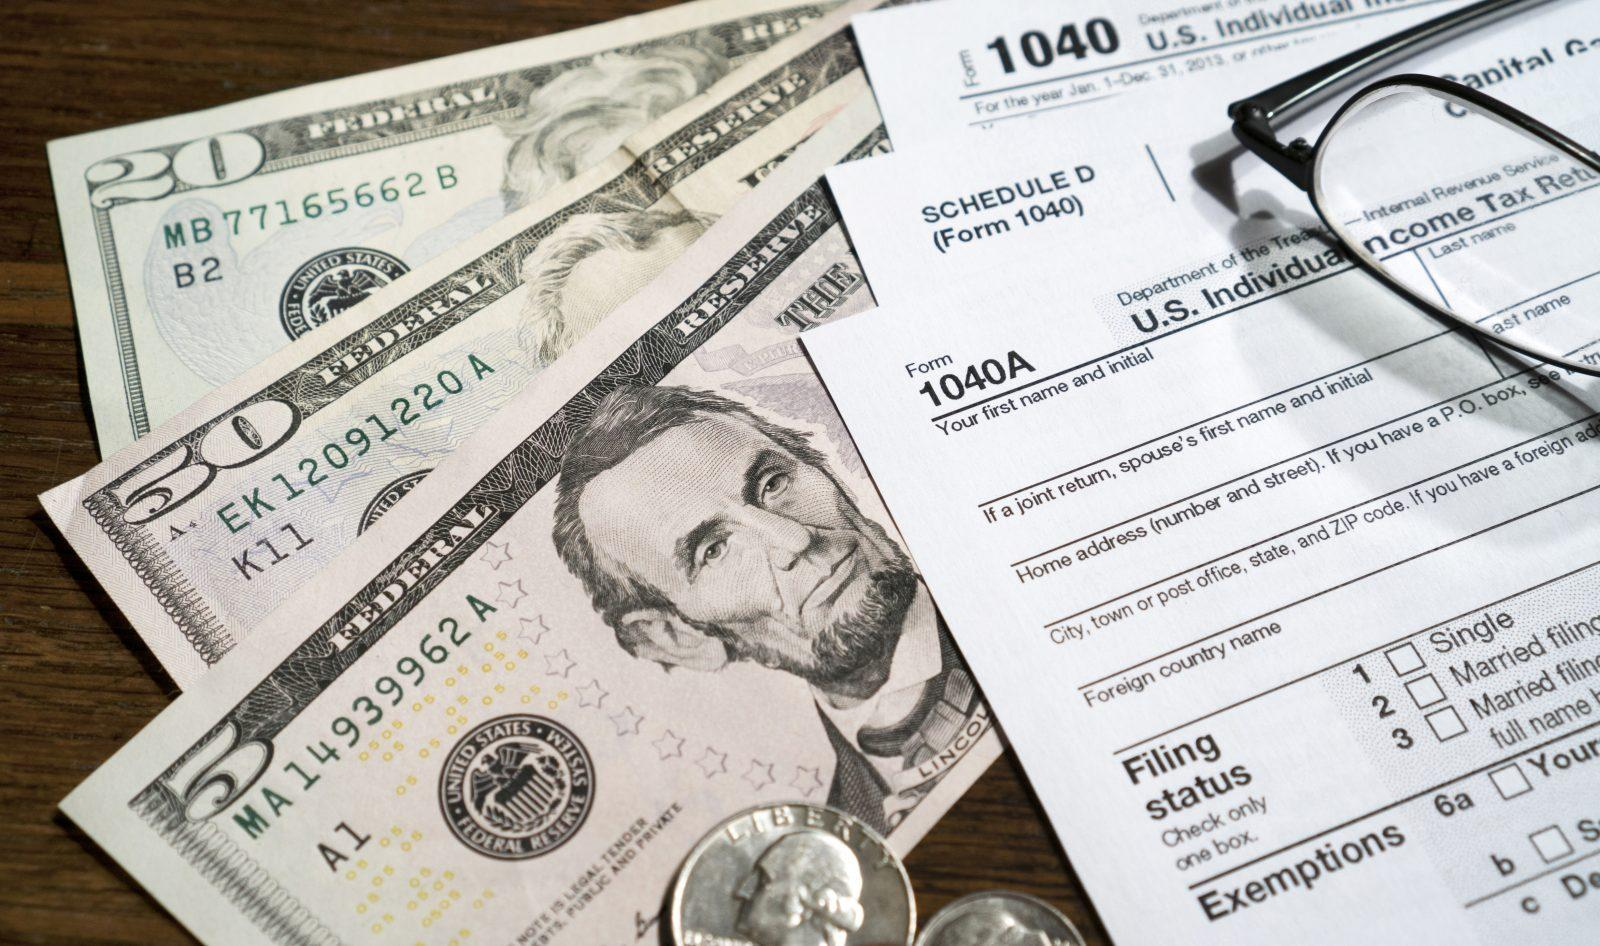 IRS: Watch Out for Tax Refund Scam